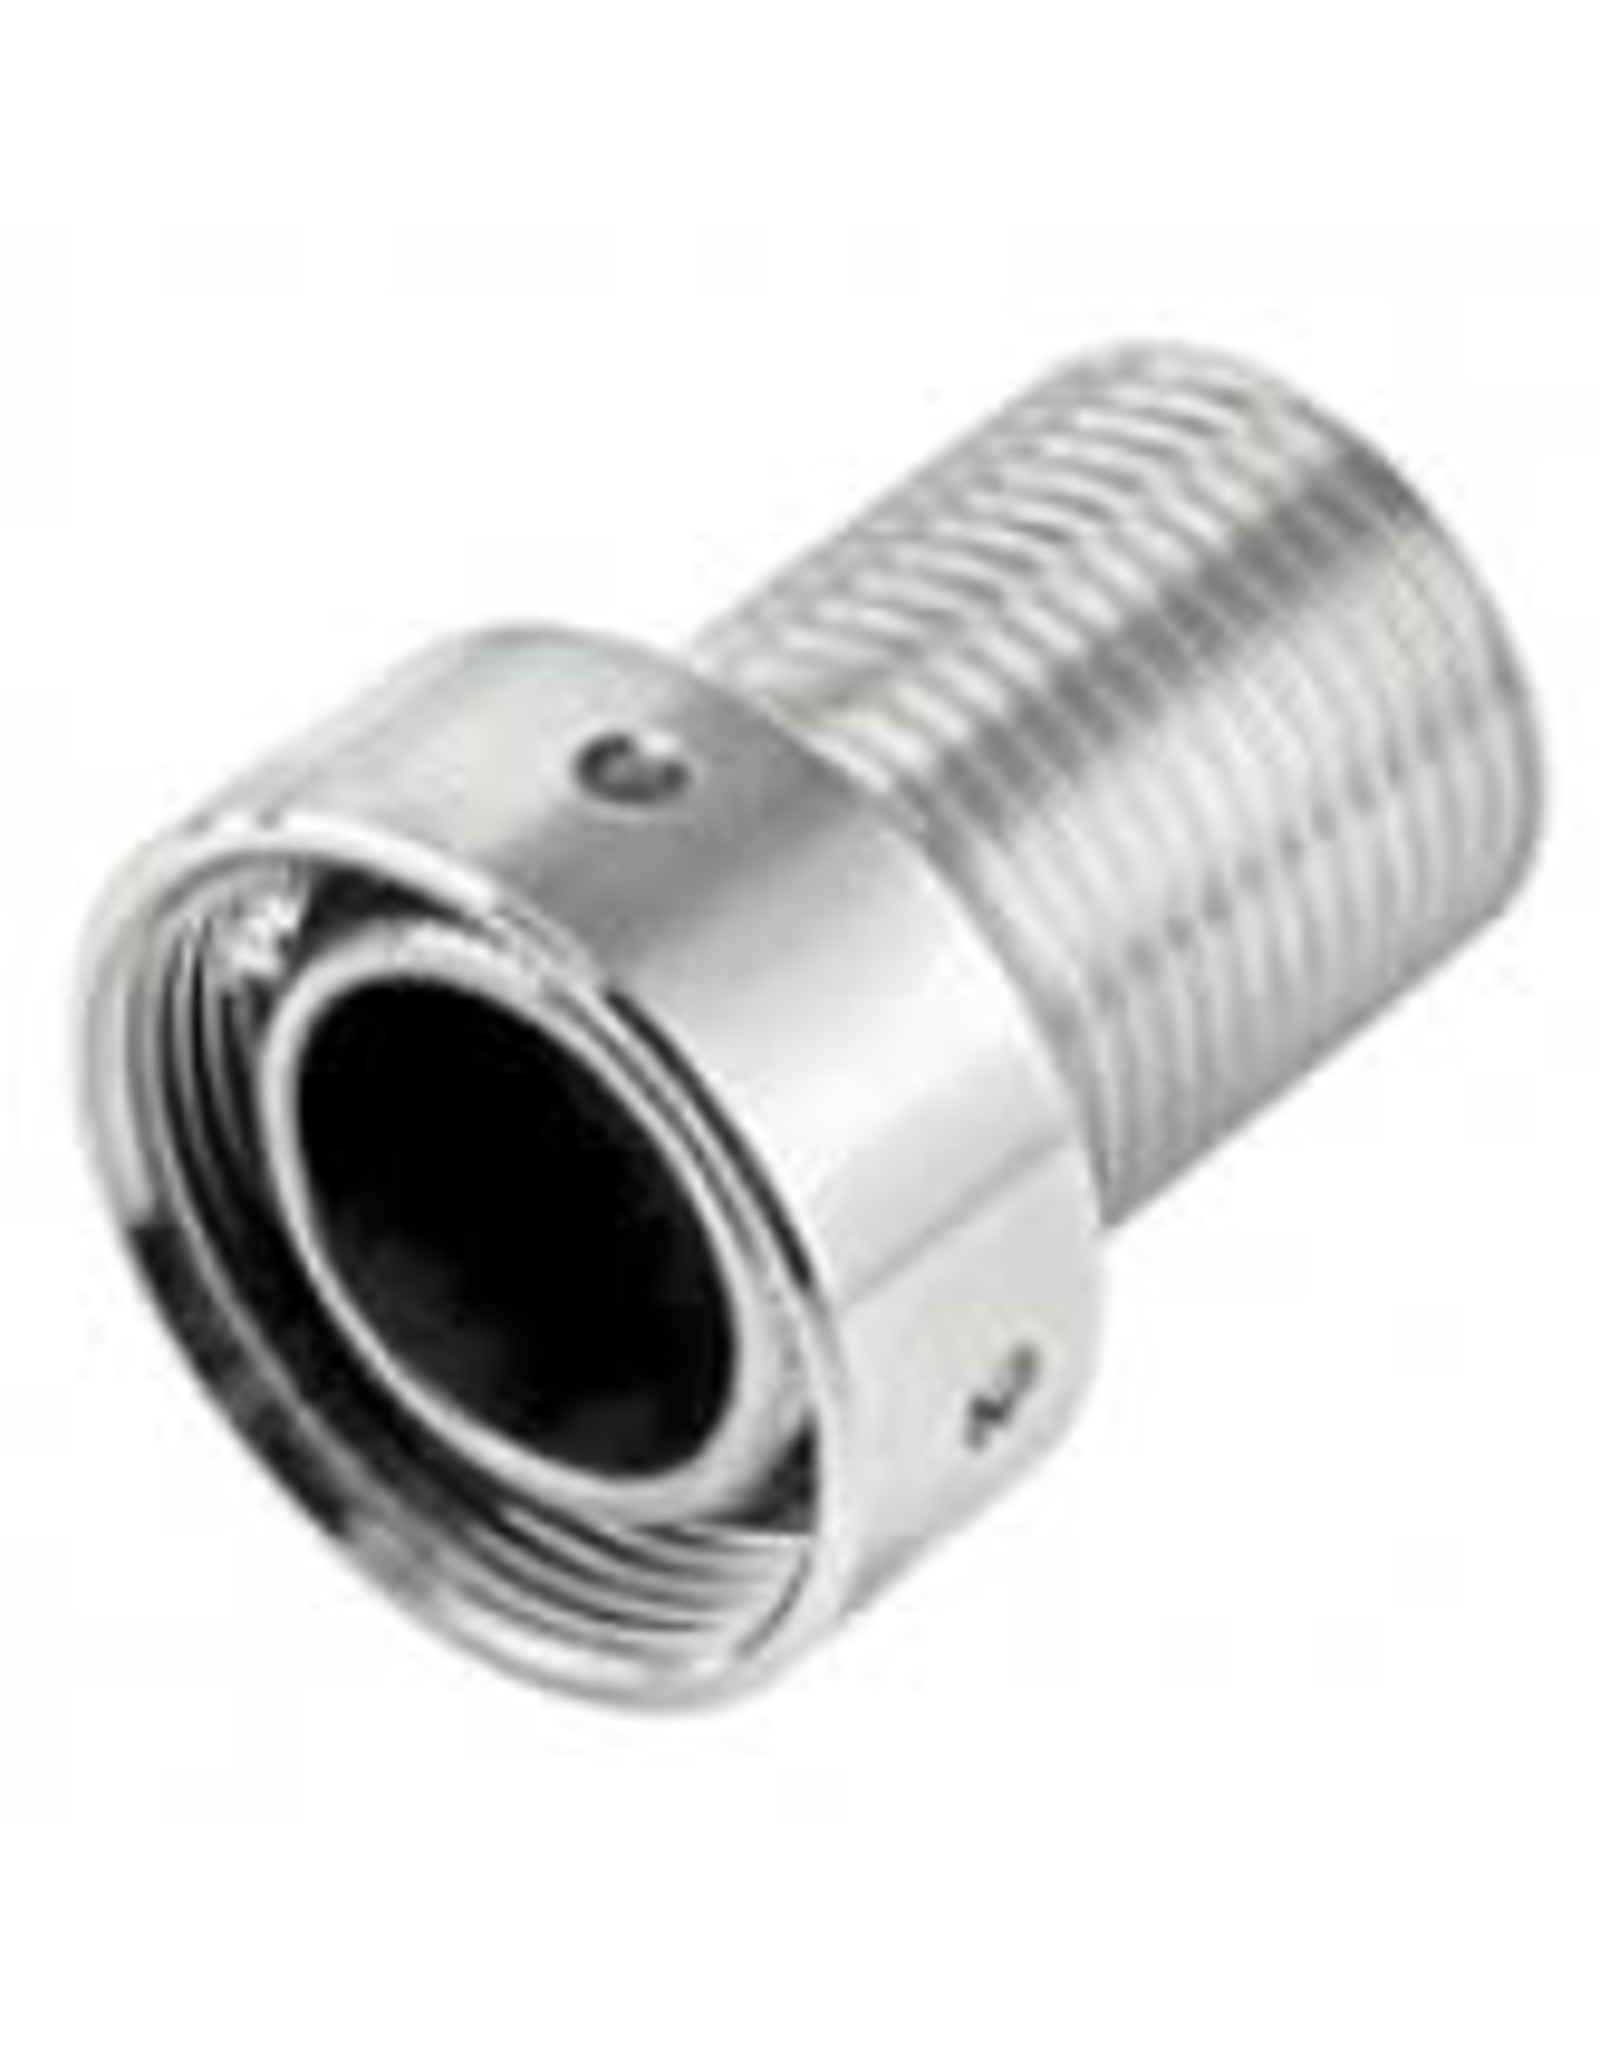 1 INCH FAUCET SHANK